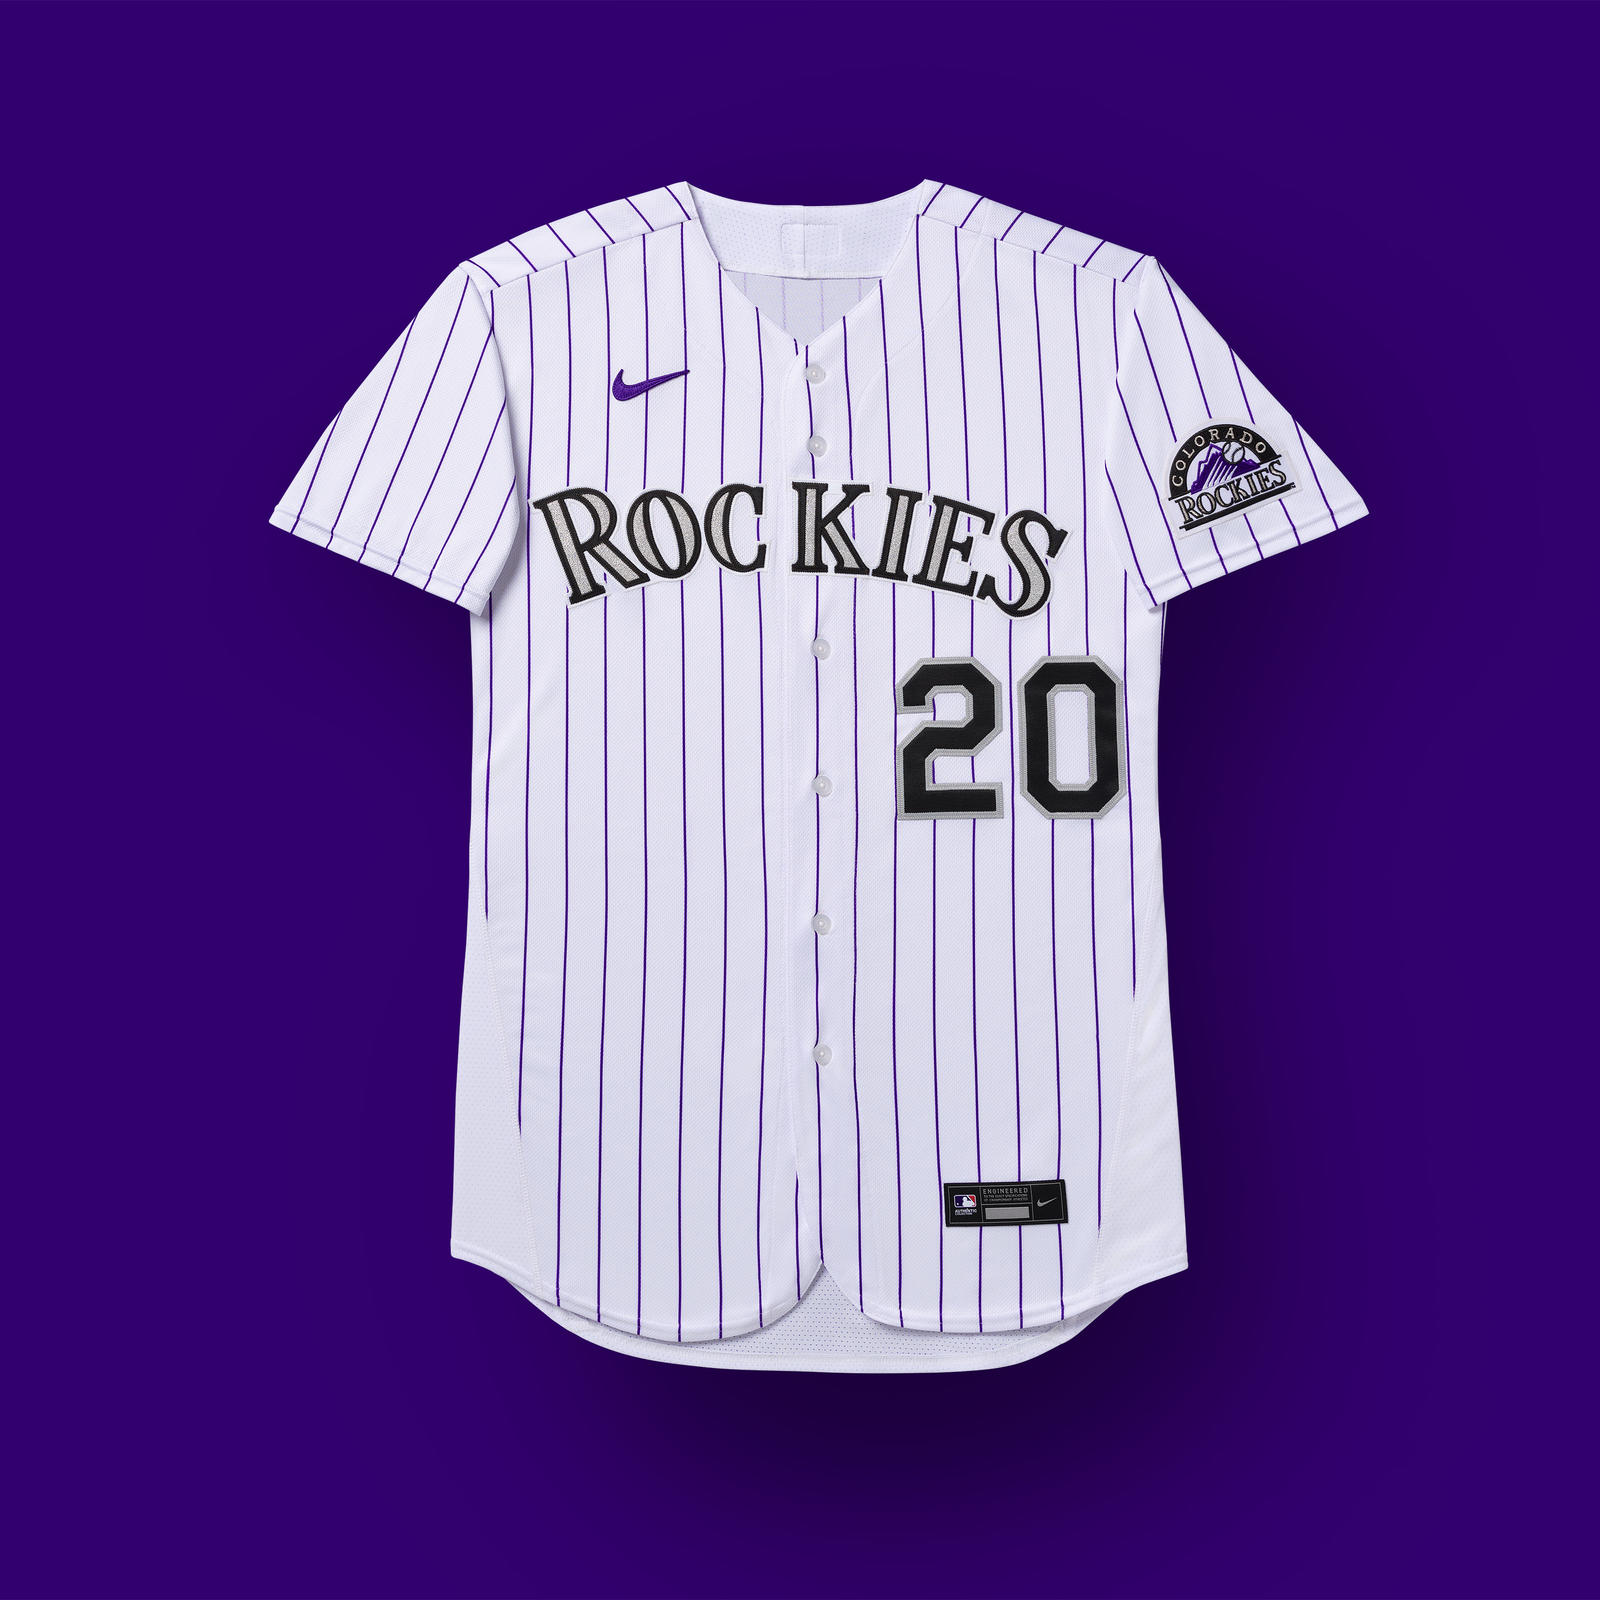 Nike x Major League Baseball Uniforms 2020 Official Images 8